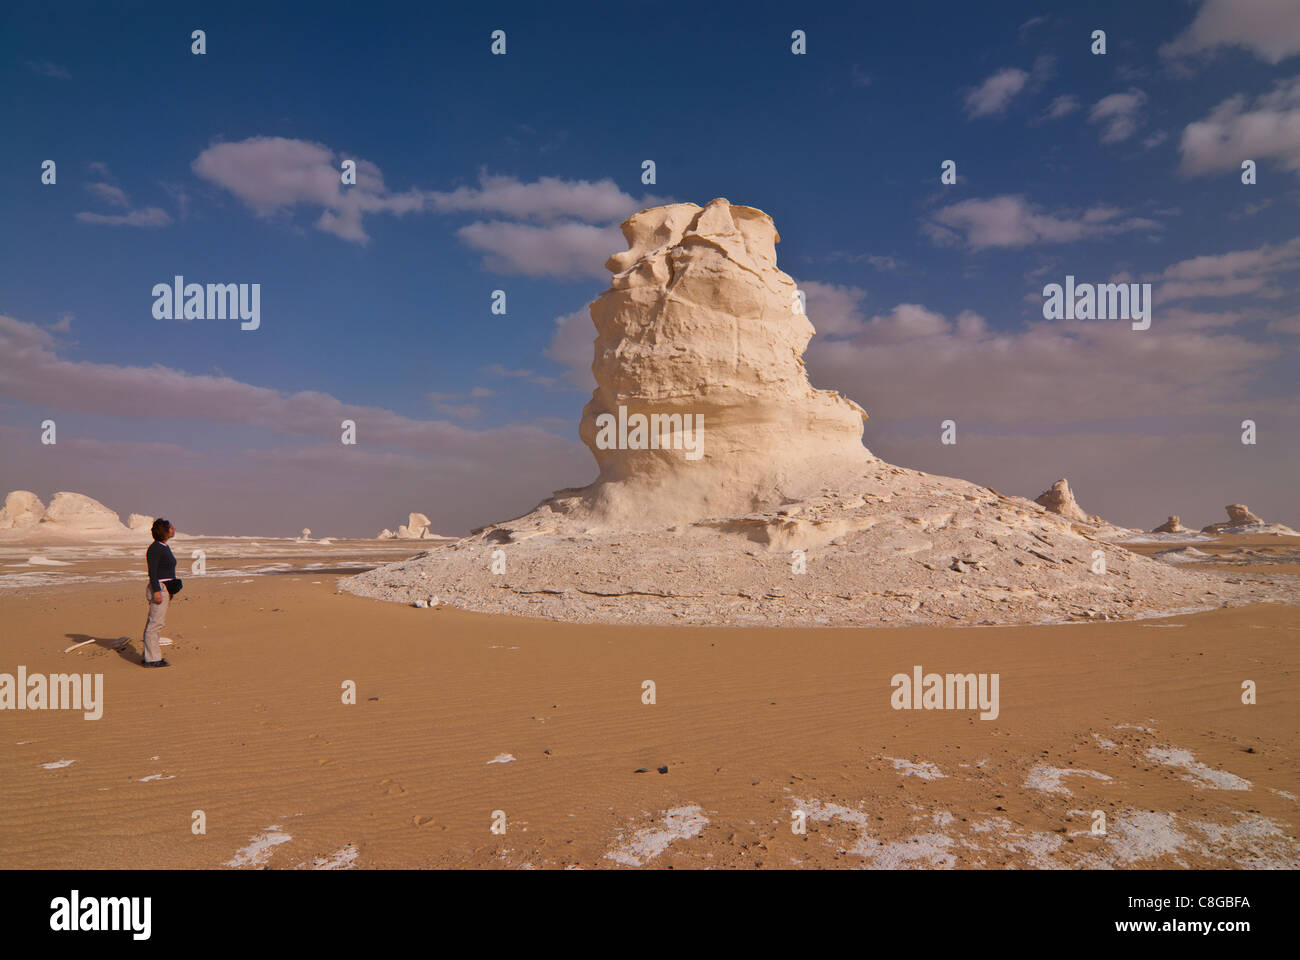 Tourist admiring unusual natural sculptures caused by wind erosion, White Desert near Bahariya, Egypt, North Africa - Stock Image